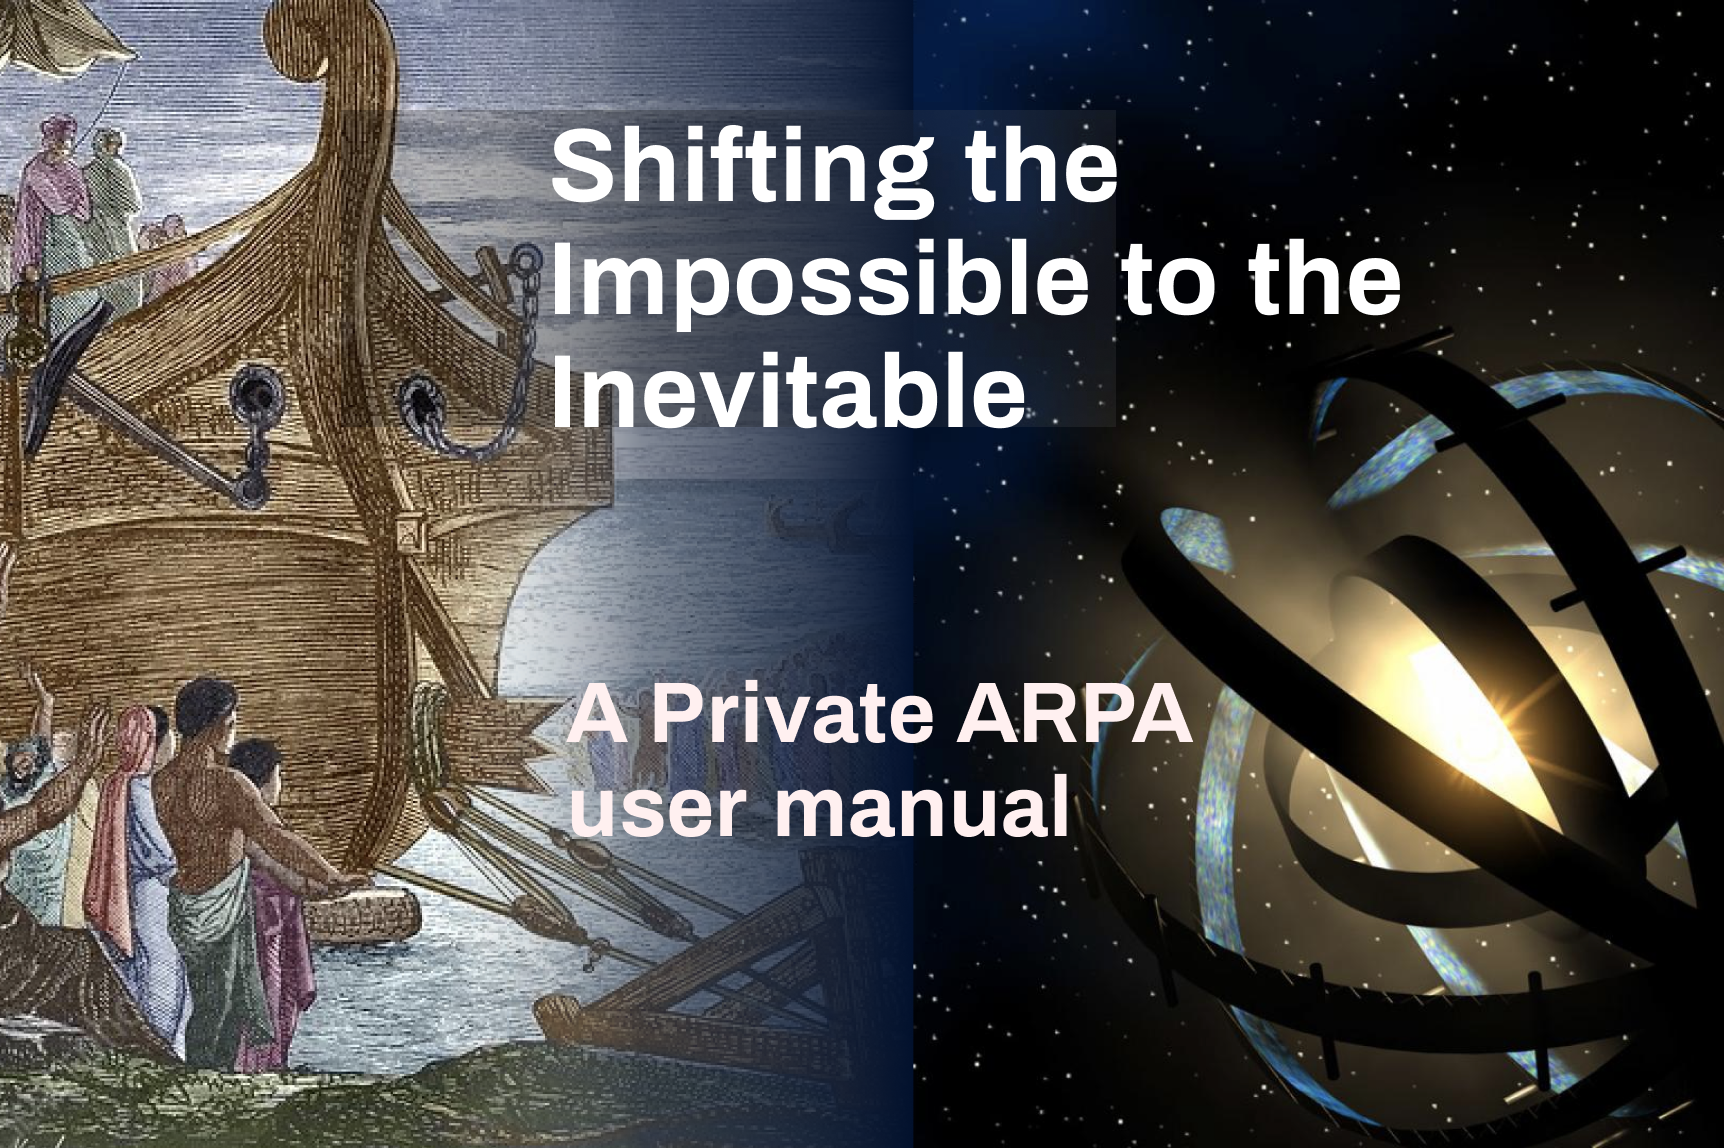 Shifting the impossible to the inevitable